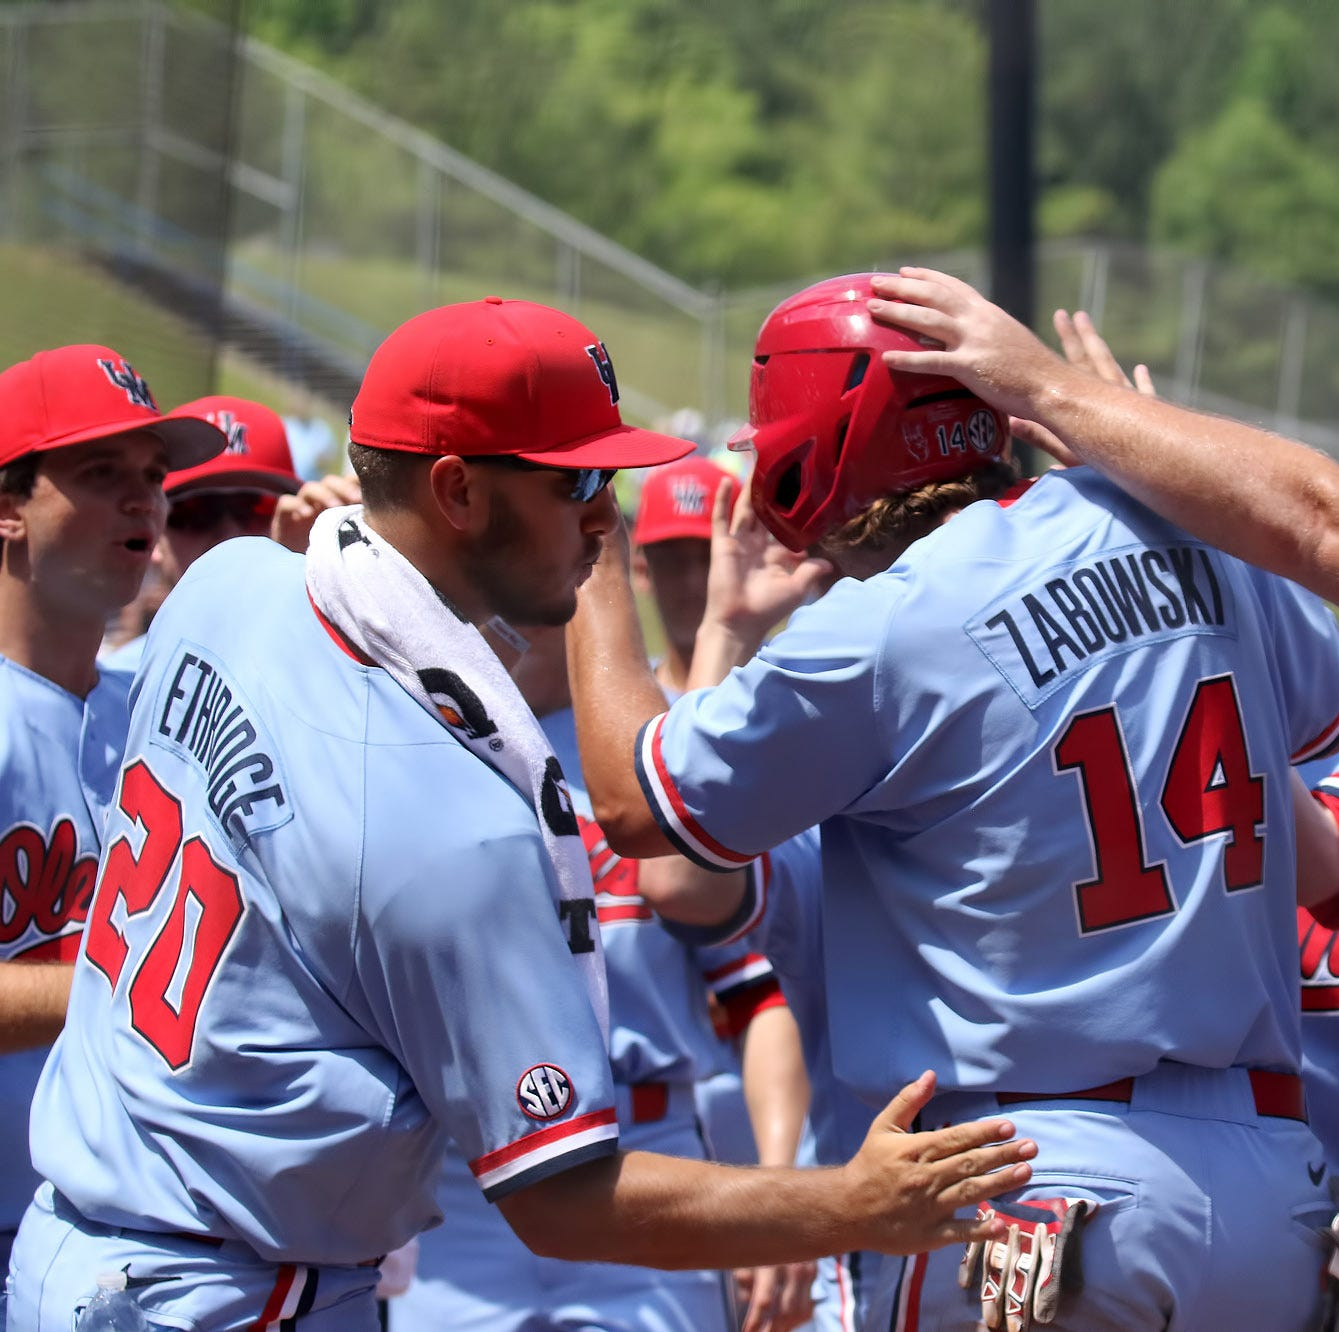 Ole Miss baseball earns bid to host 2019 NCAA Regionals in Oxford next weekend